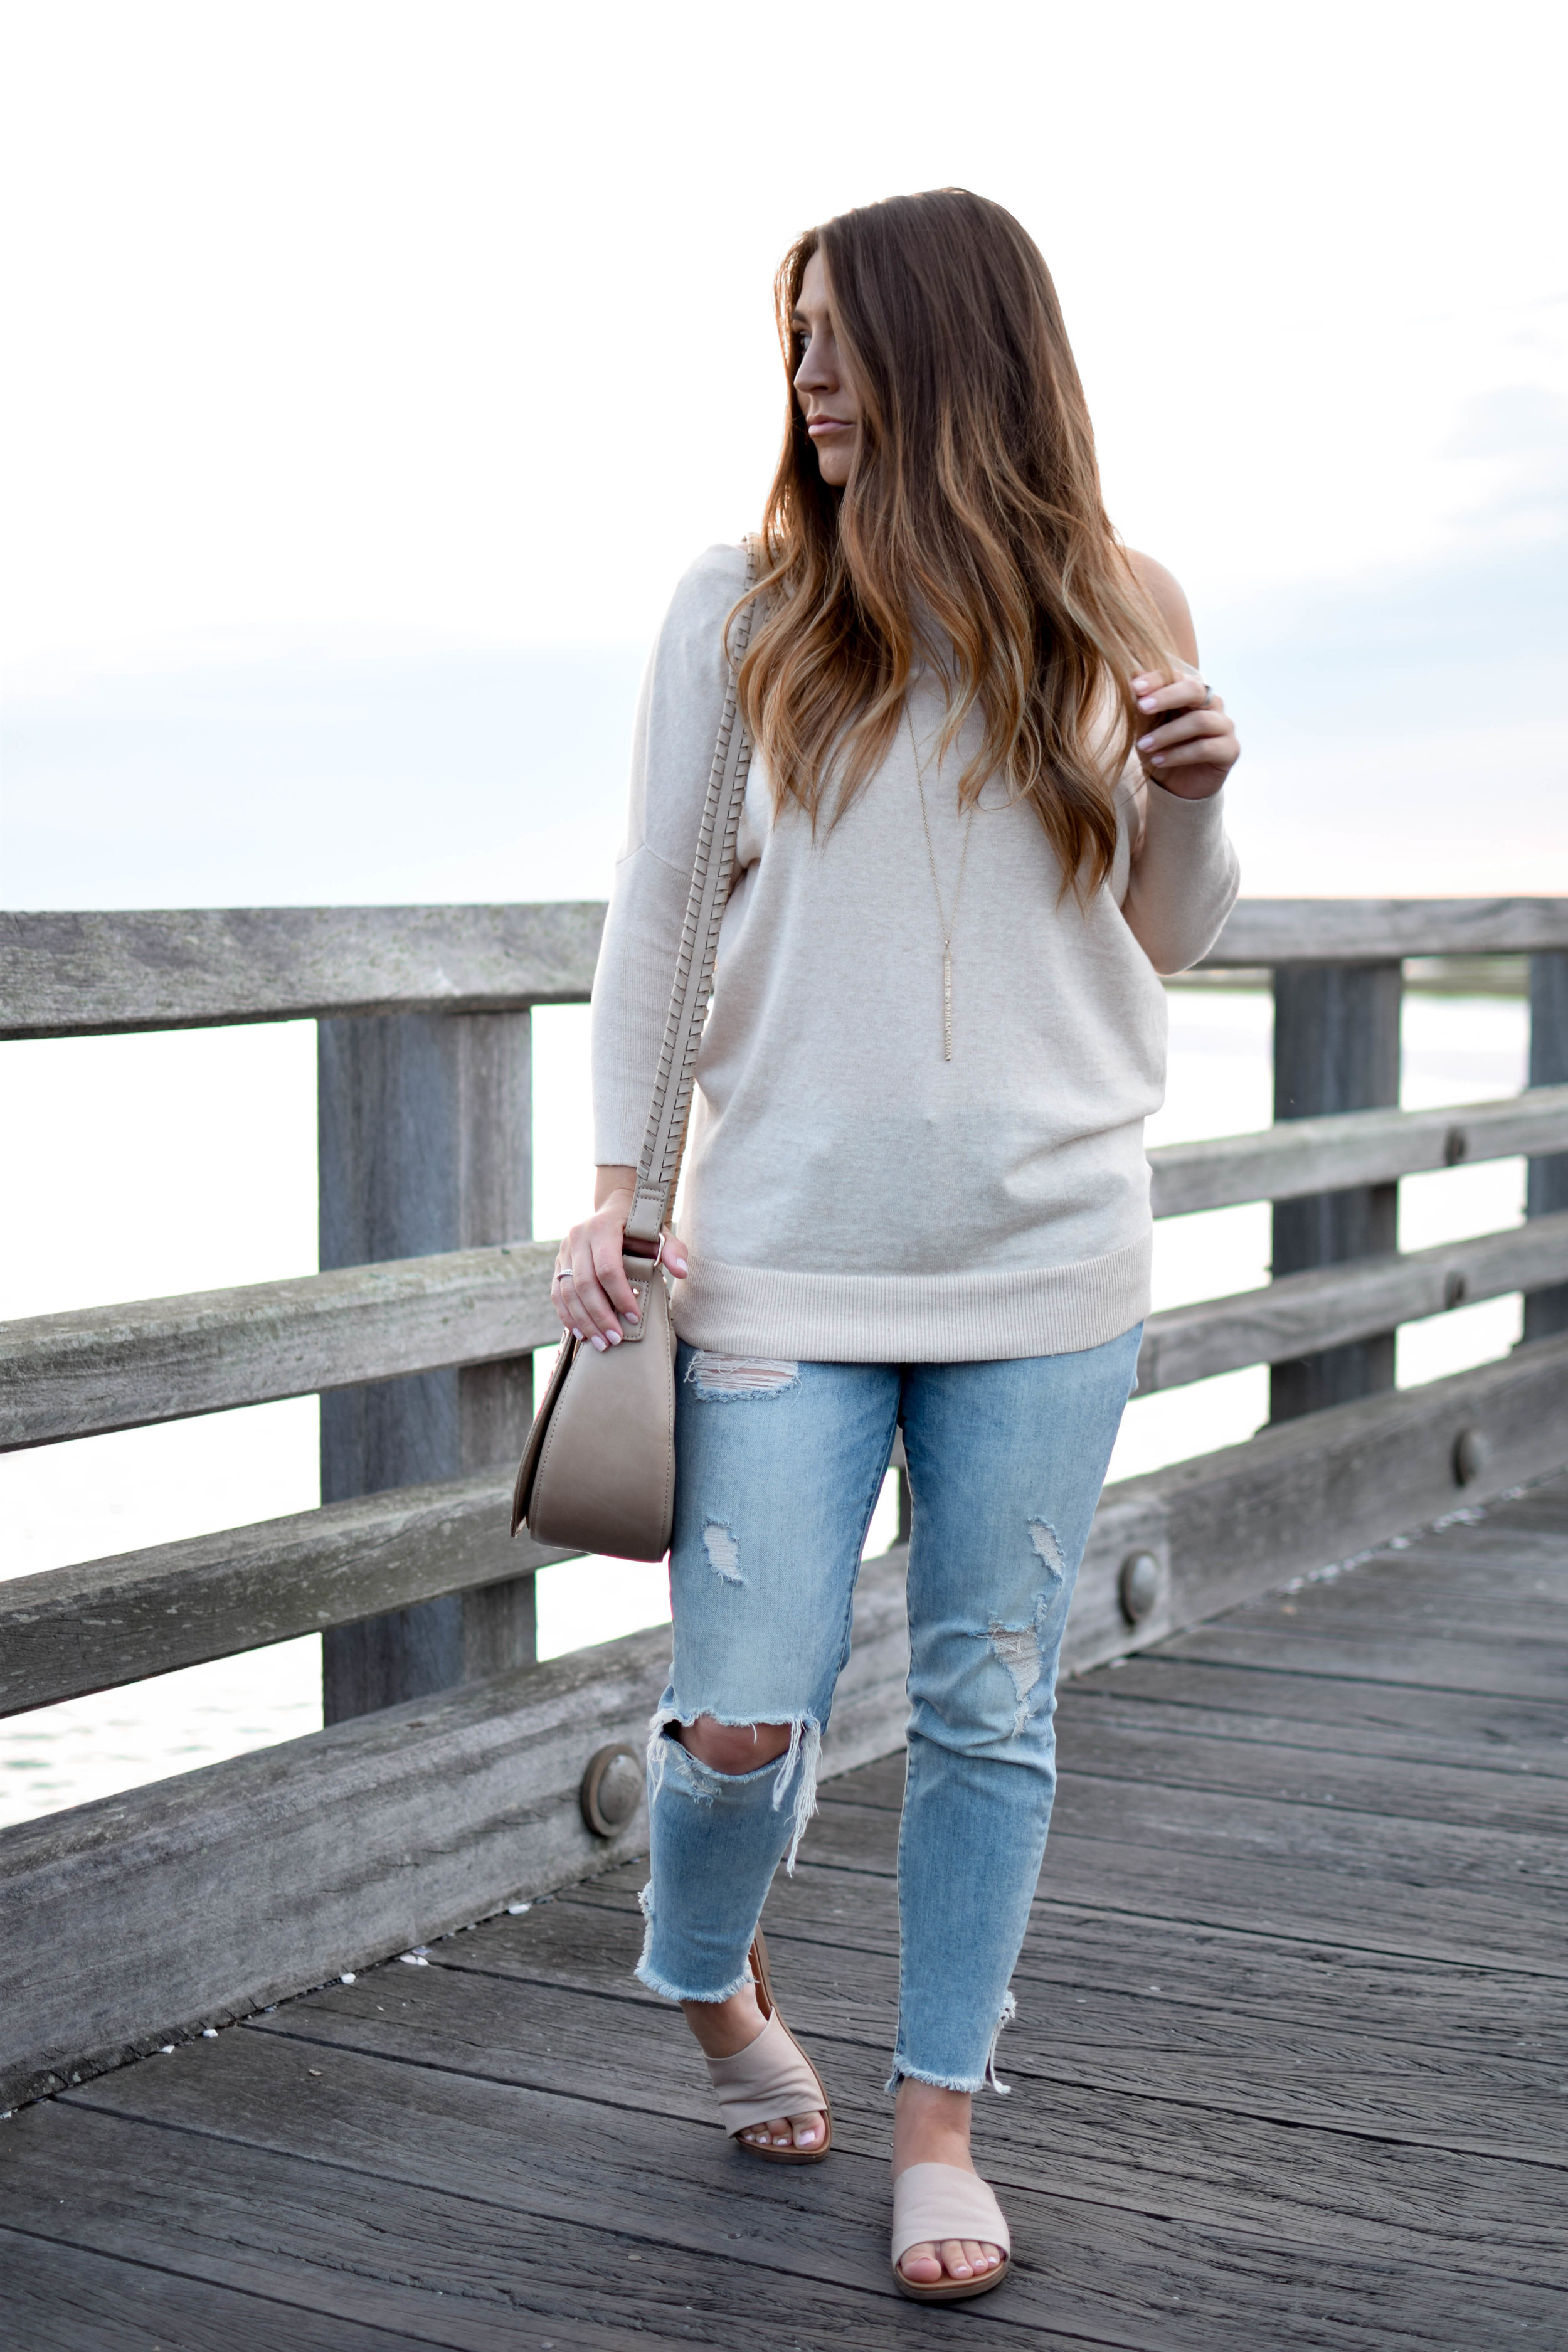 anthropologie off the shoulder sweater / distressed denim / summer outfit idea / fall transition outfit idea